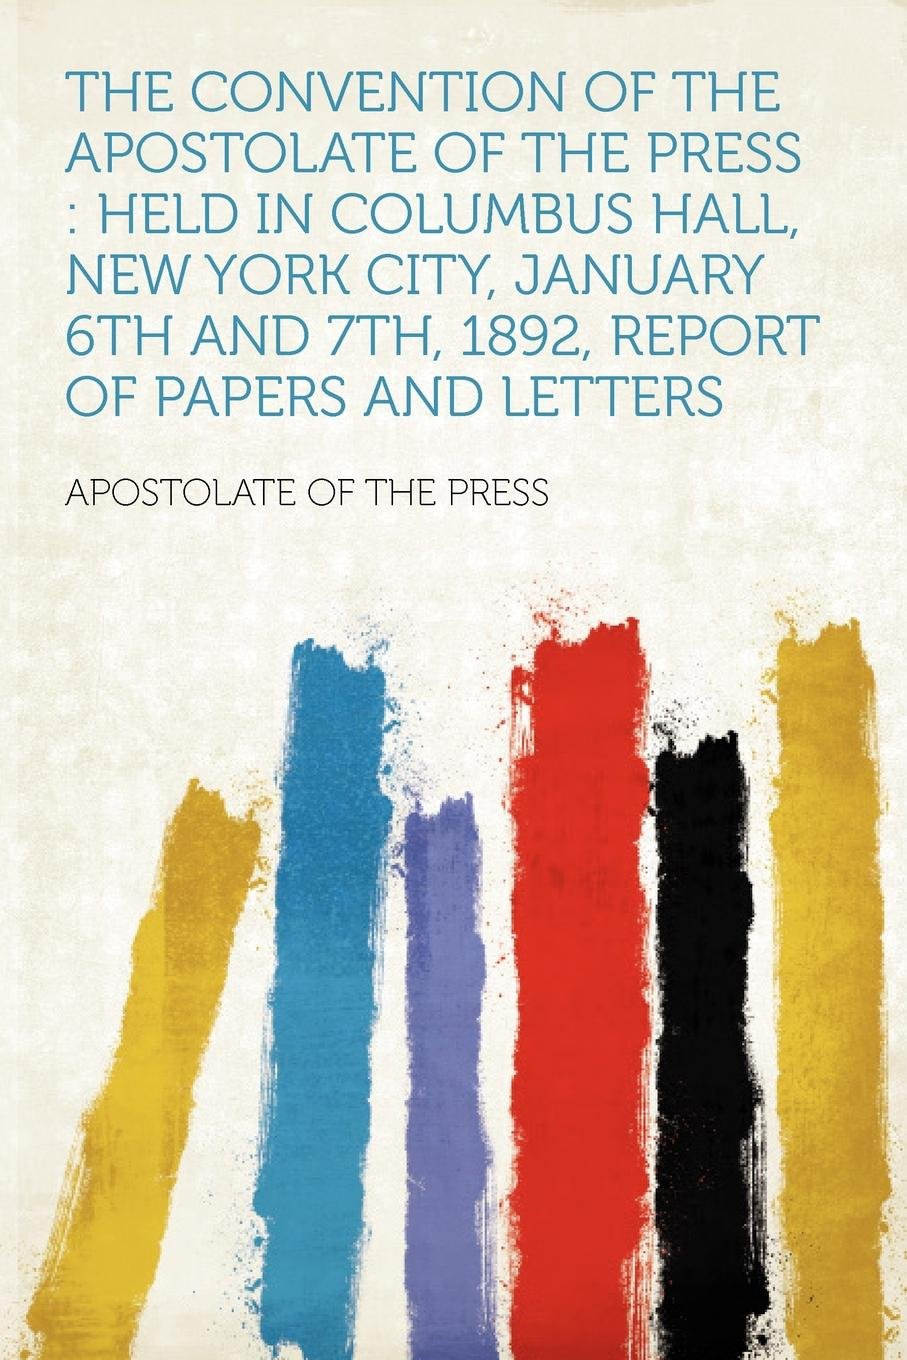 Download The Convention of the Apostolate of the Press: Held in Columbus Hall, New York City, January 6th and 7th, 1892, Report of Papers and Letters pdf